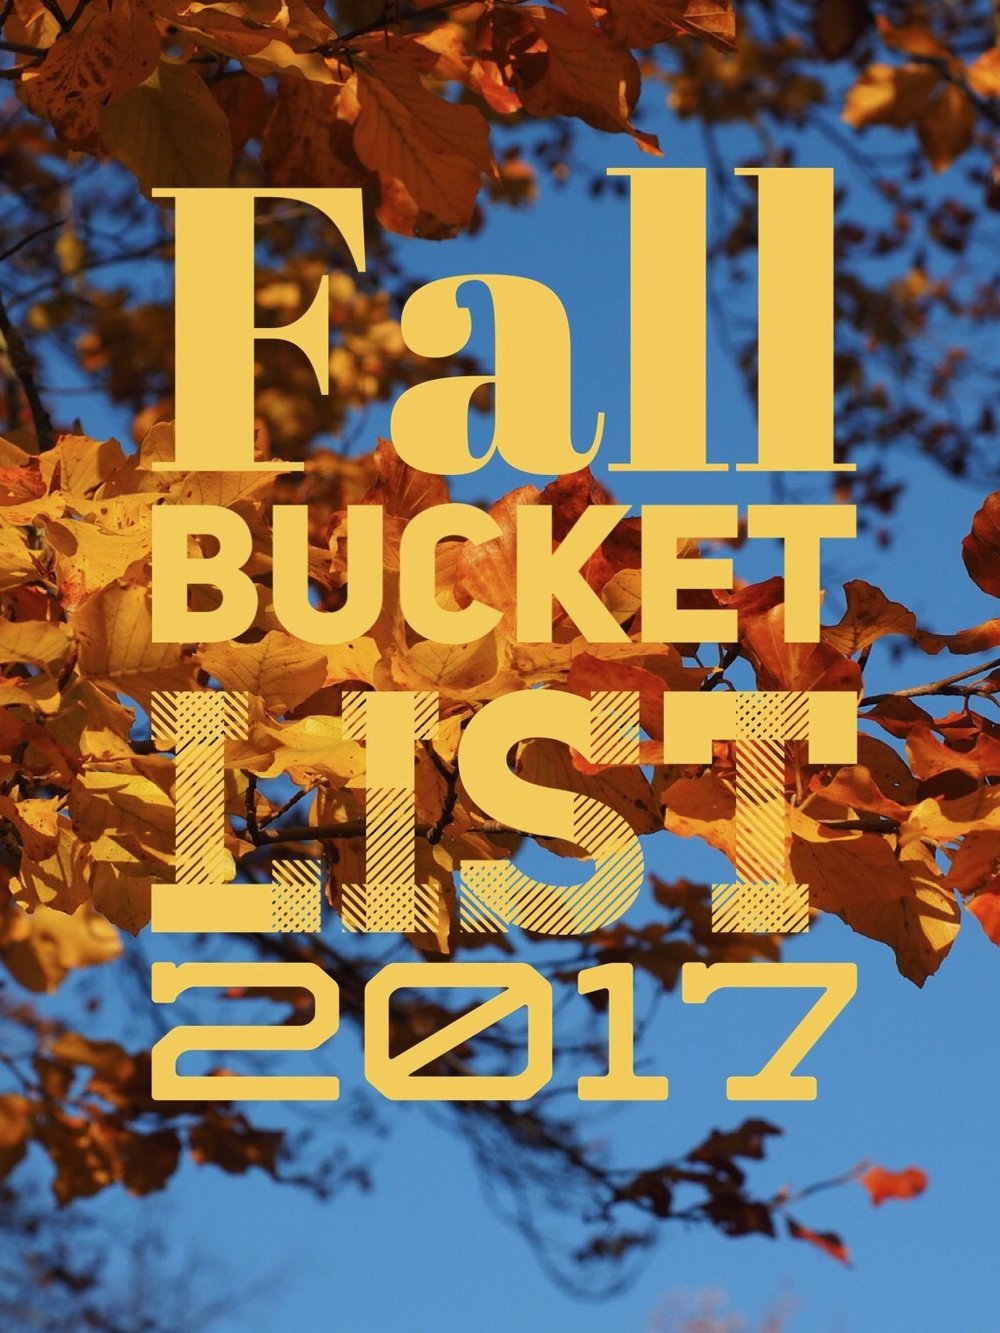 Fall Bucket List 2017.jpg